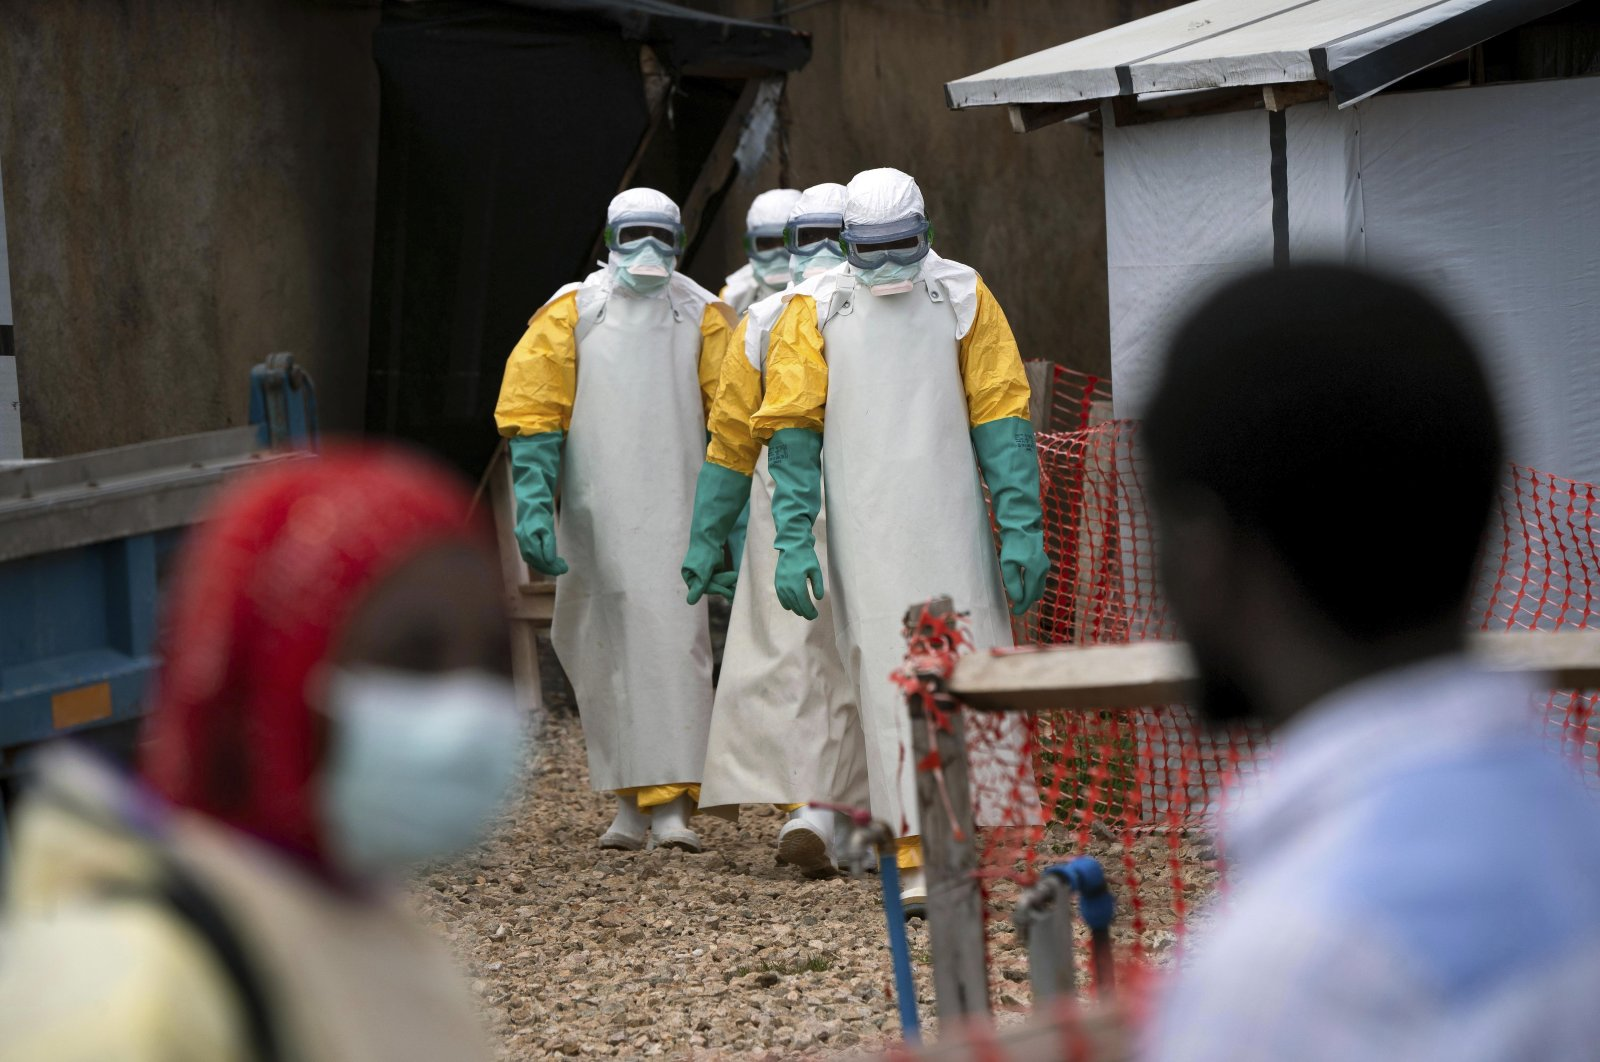 Health workers wearing protective gear begin their shift at an Ebola treatment center, Beni, Democratic Republic of Congo, July 16, 2019. (AP Photo)